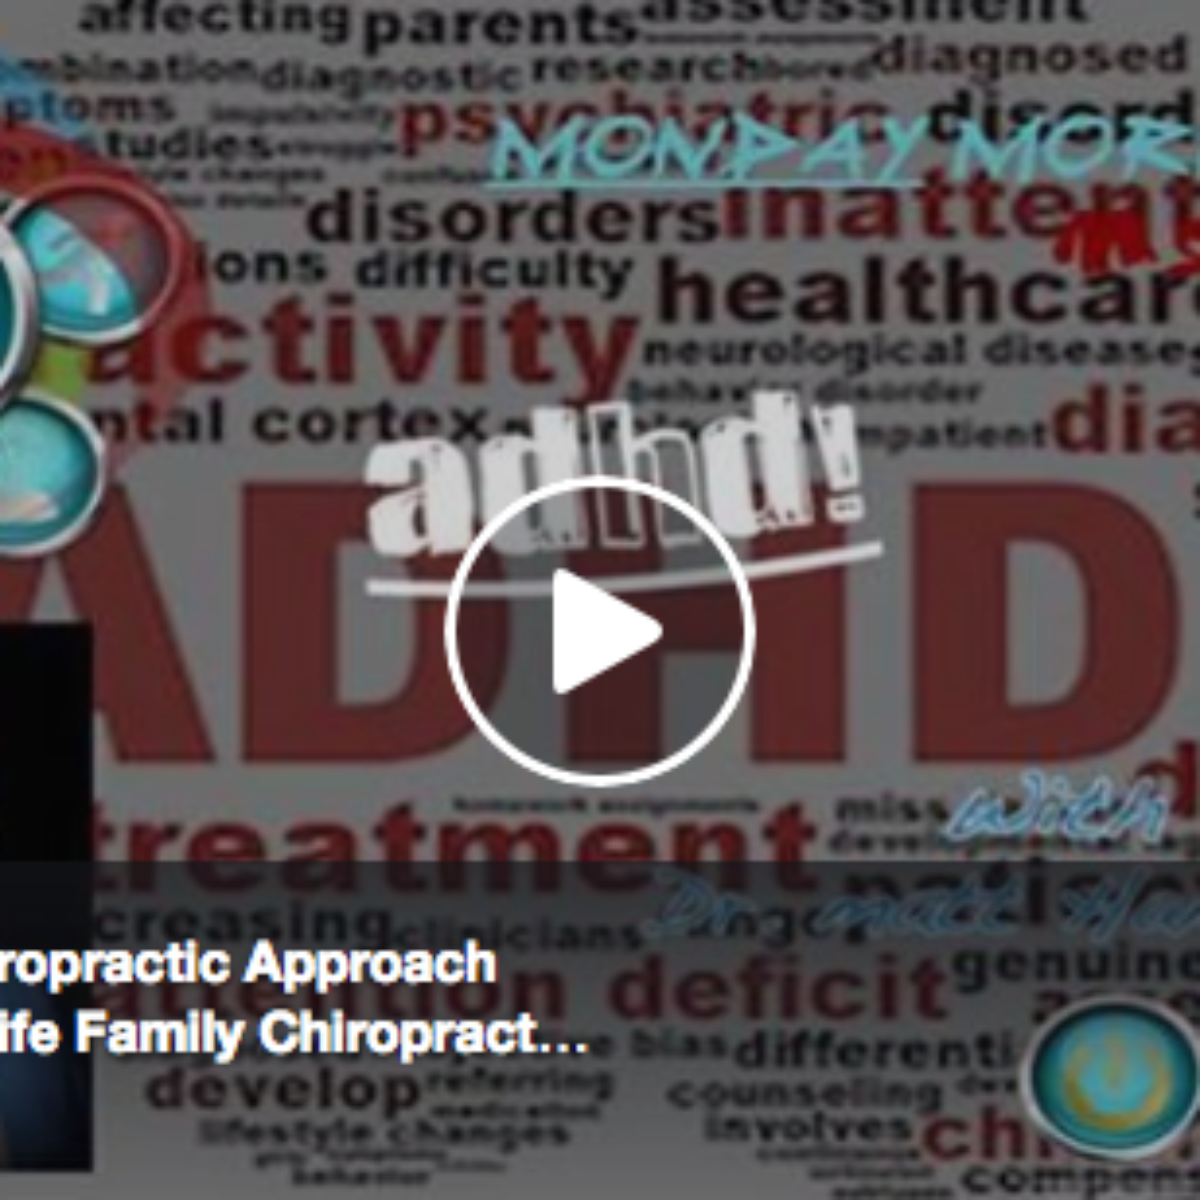 ADHD & The Chiropractic Approach